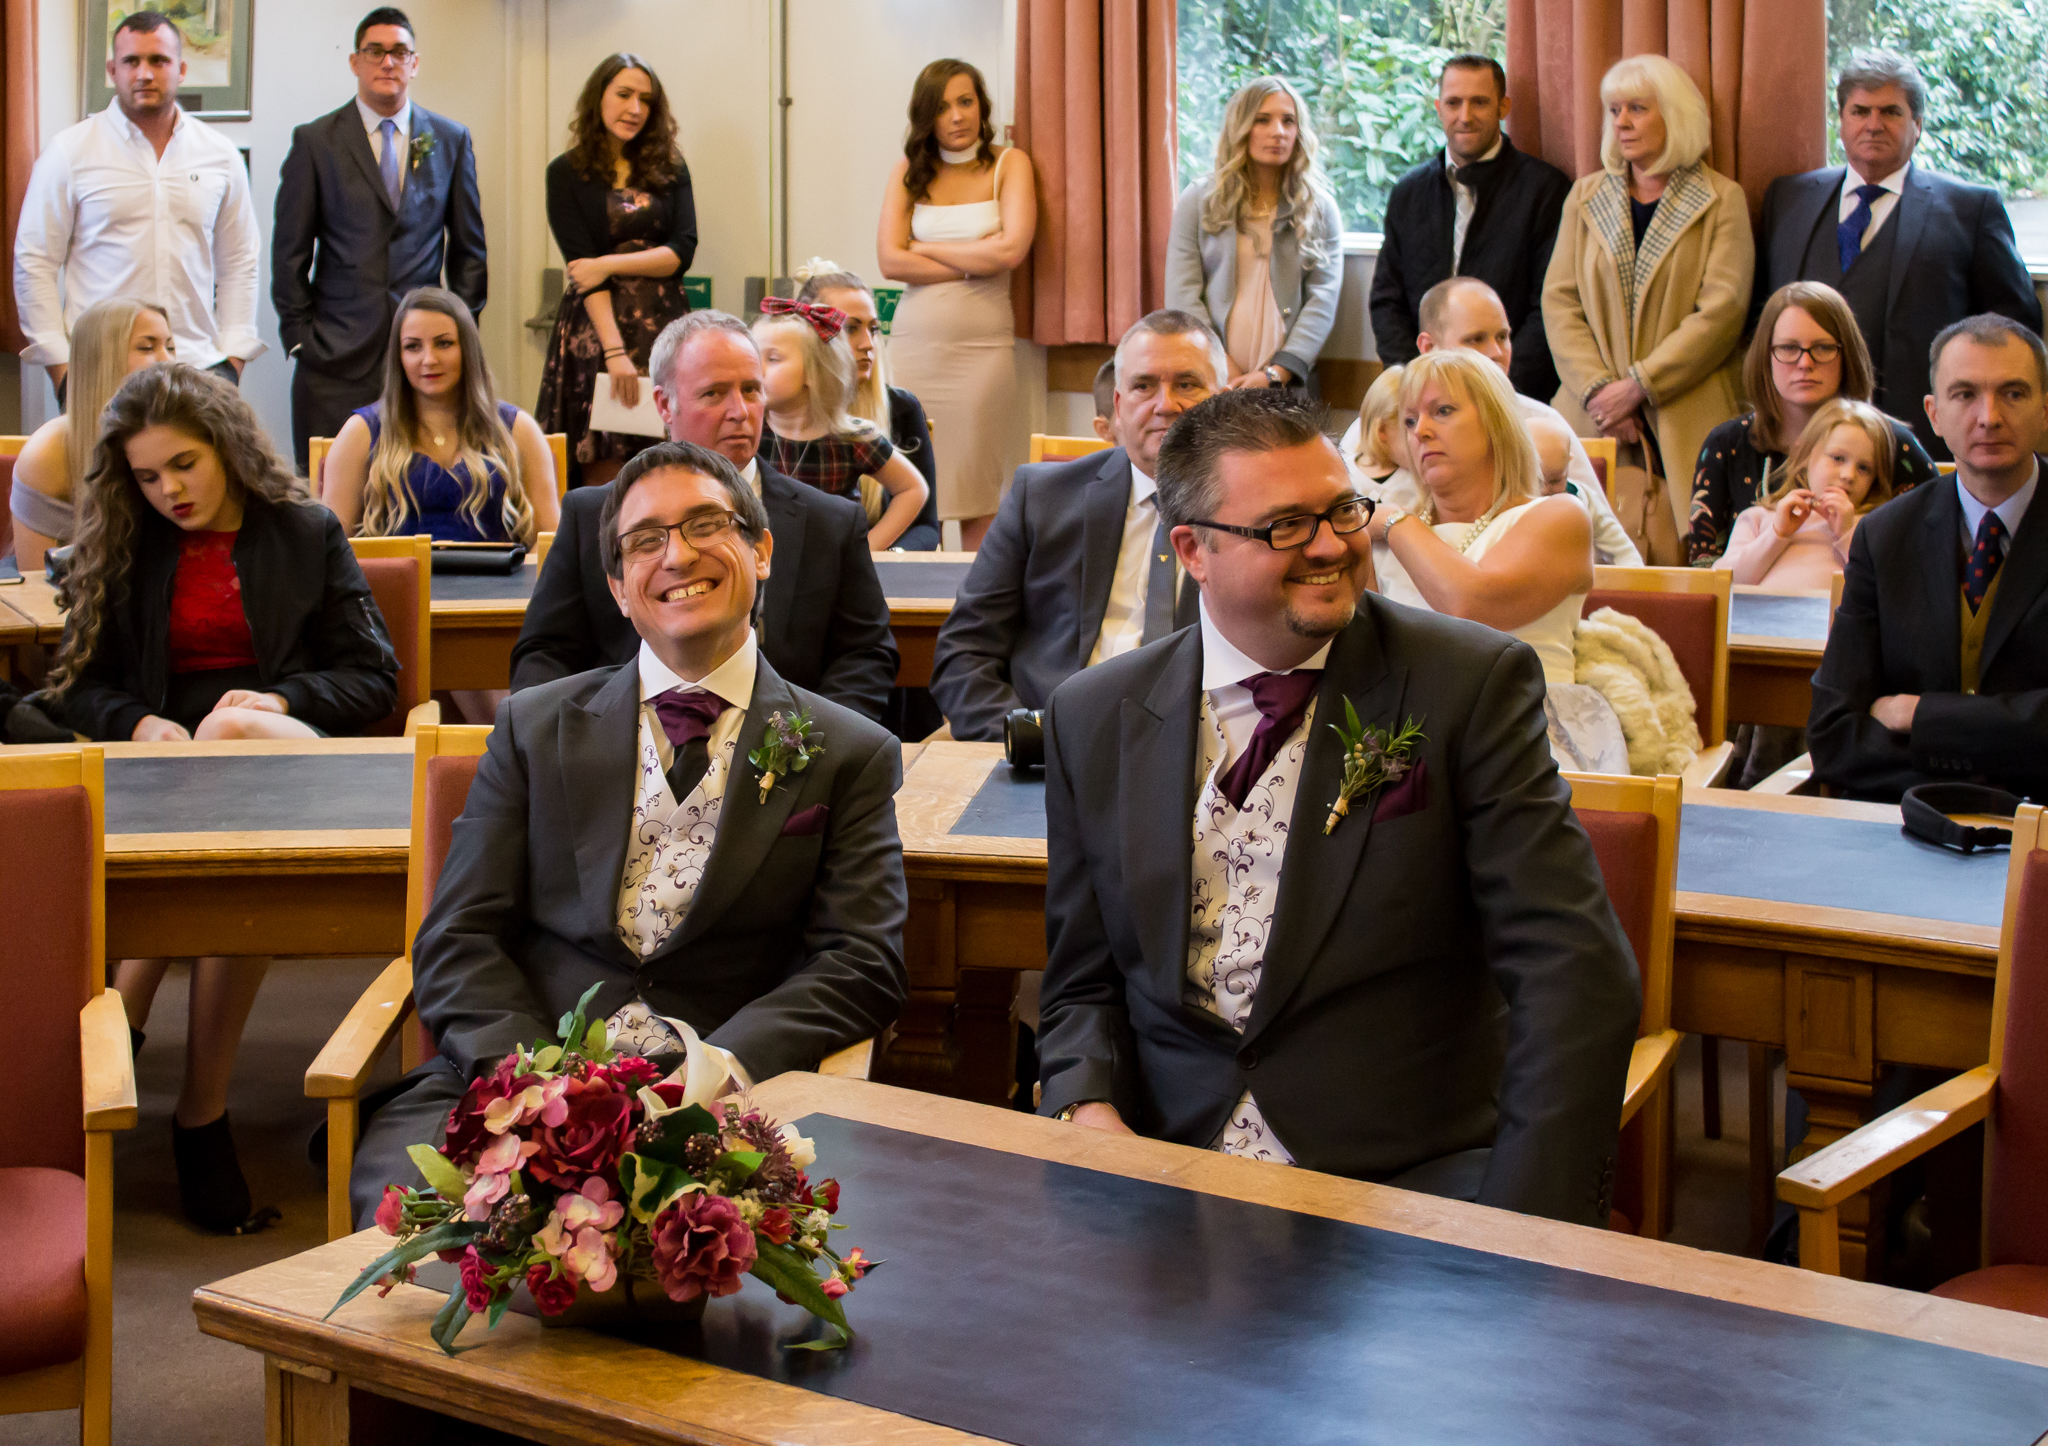 wedding-photographer-nortamptonshire